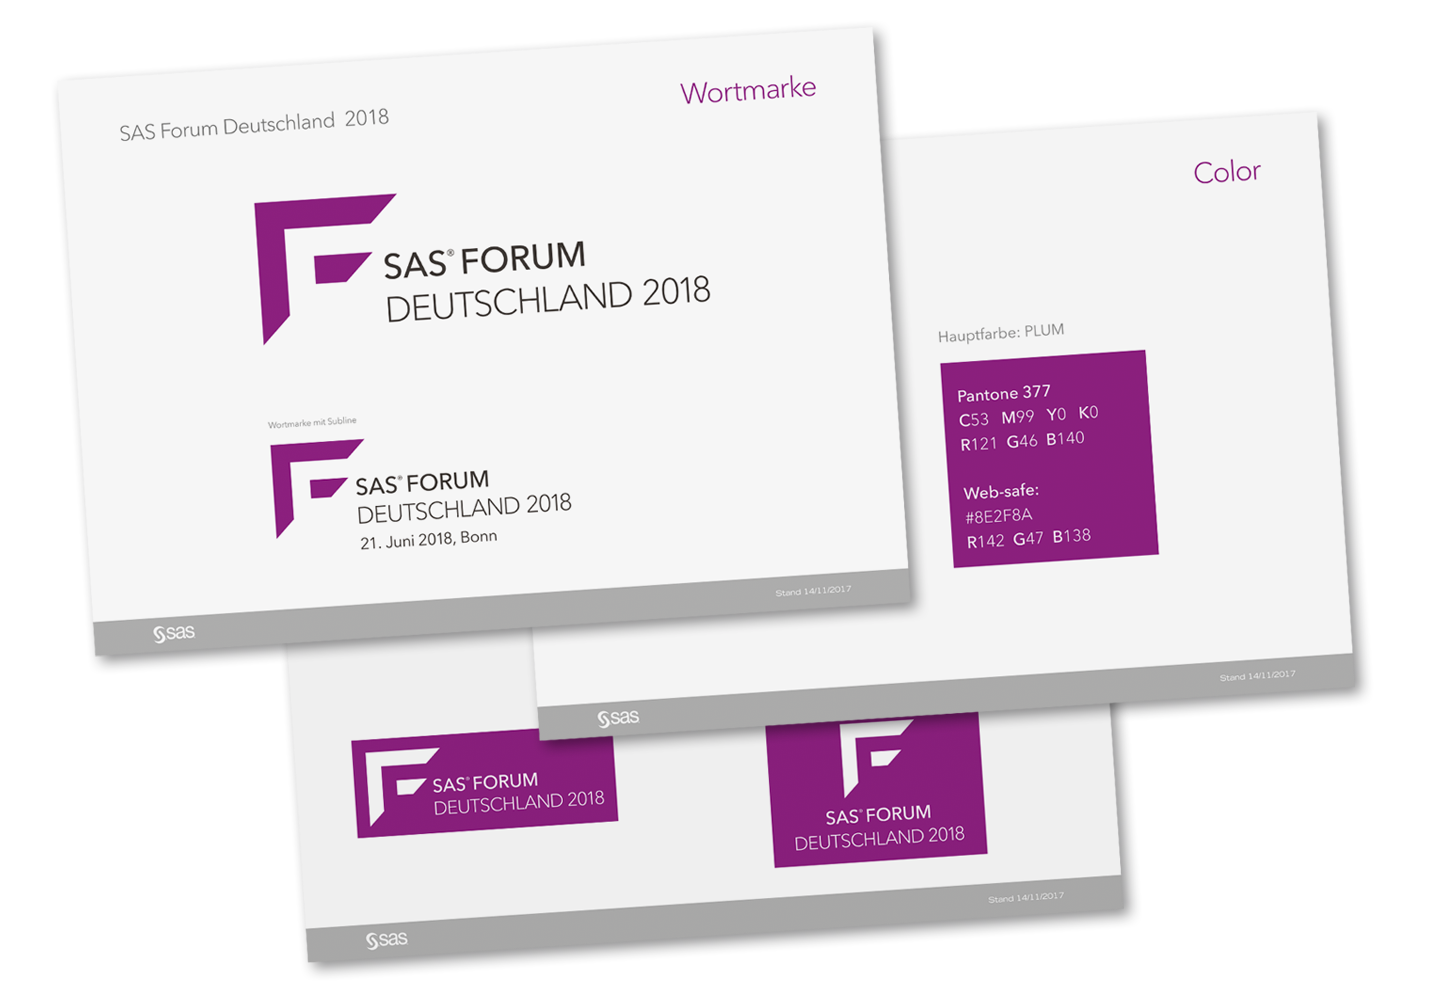 P12 Referenz SAS Forum 2018 Styleguide Messe